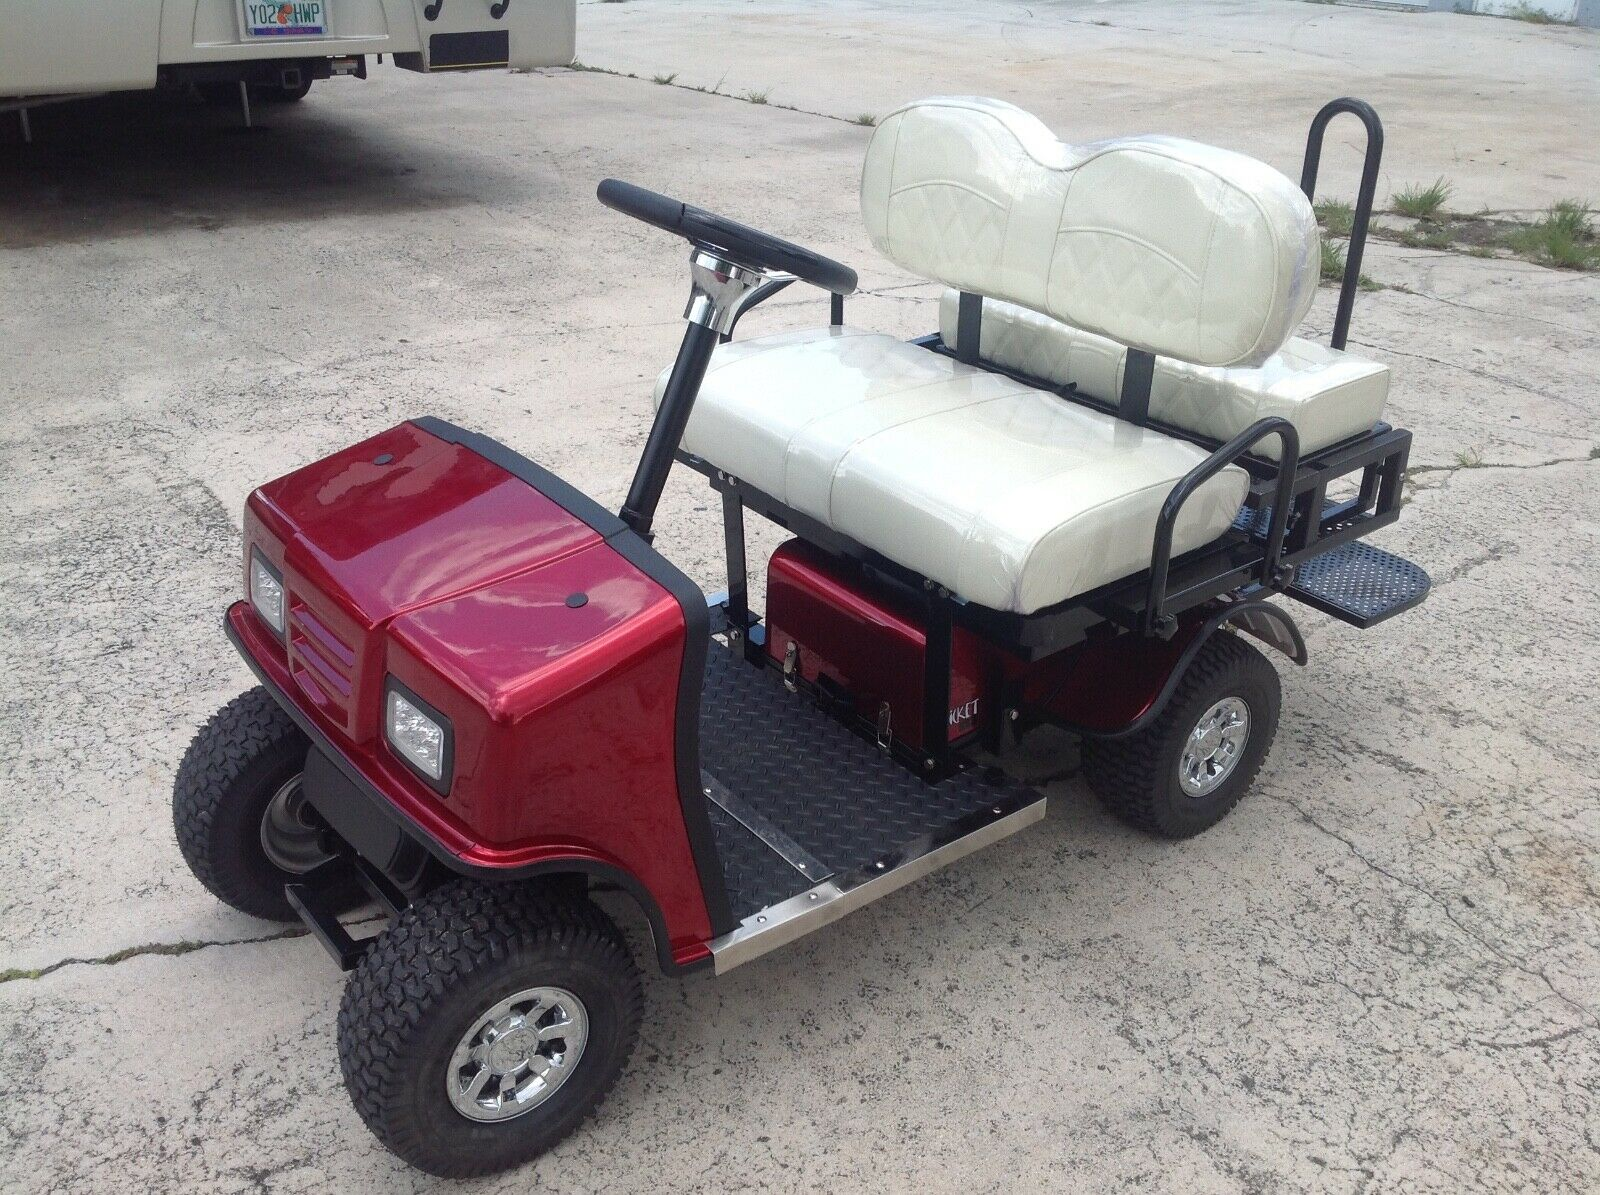 Cricket Golf Cart Boca Raton Cricket Mini Mobility Golf Carts